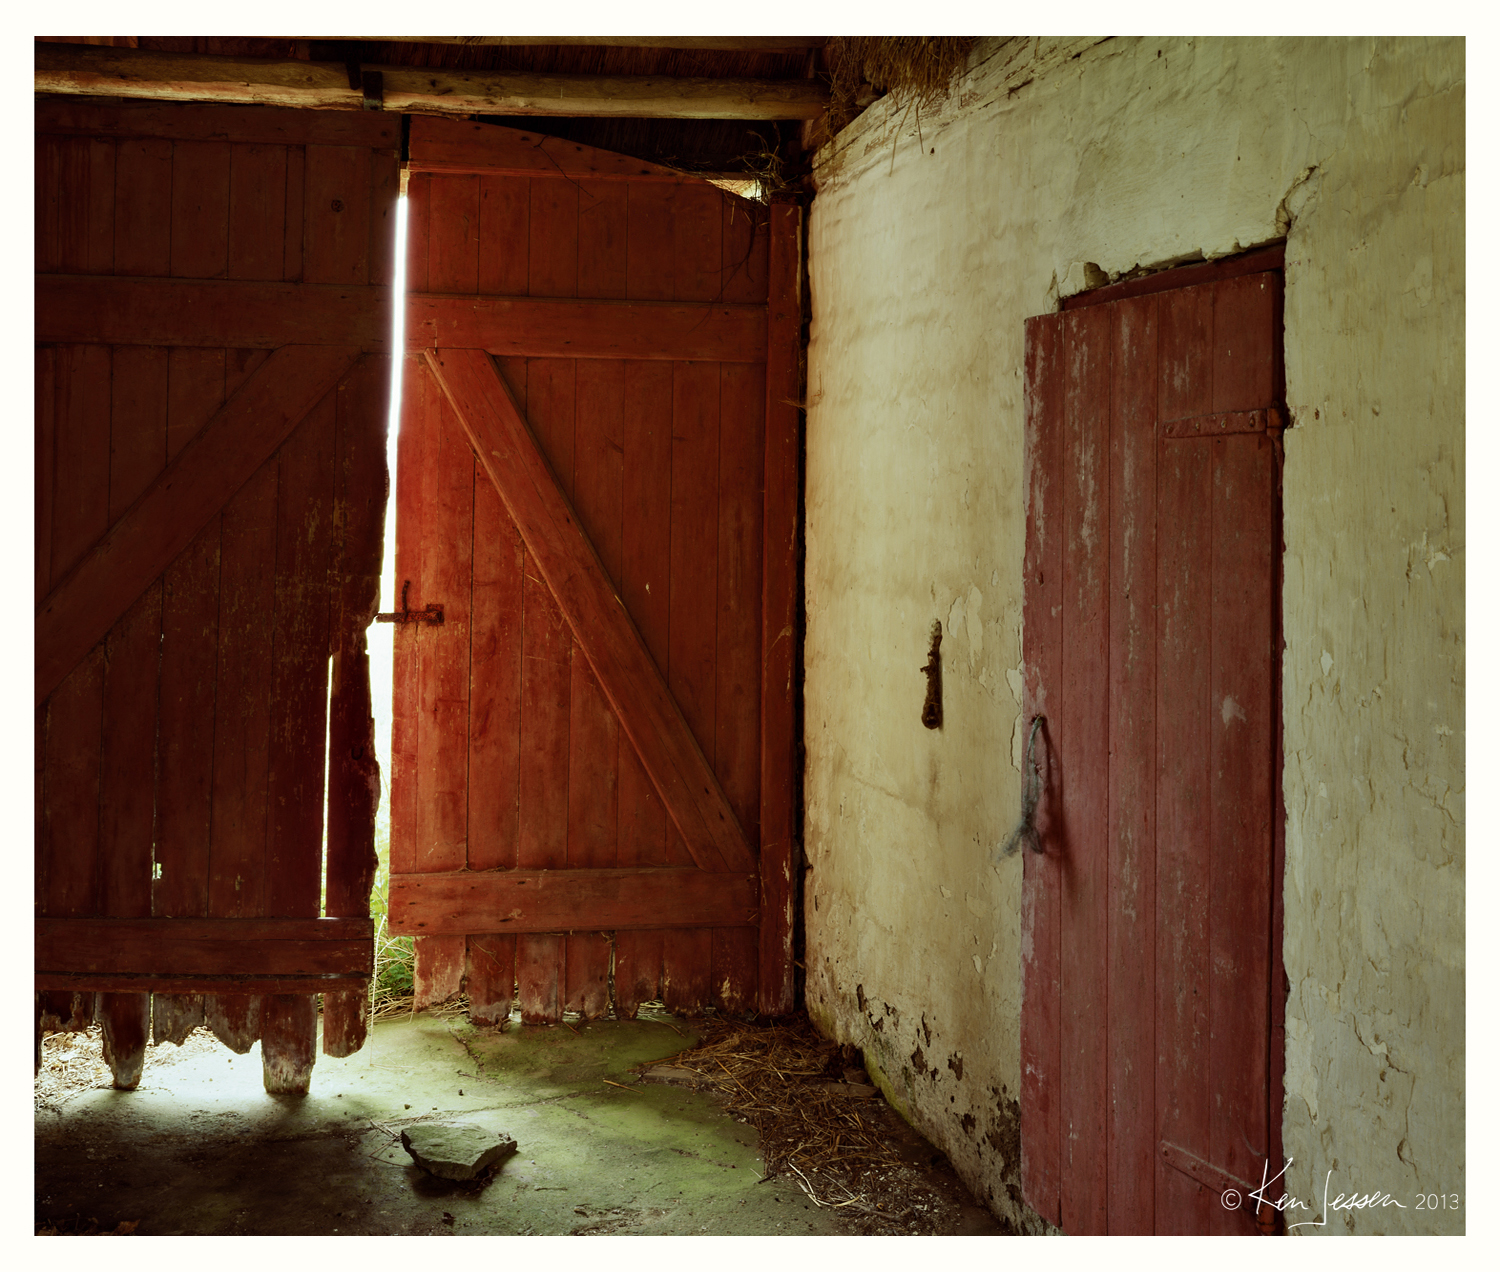 Stable Doors at Abandoned Farm